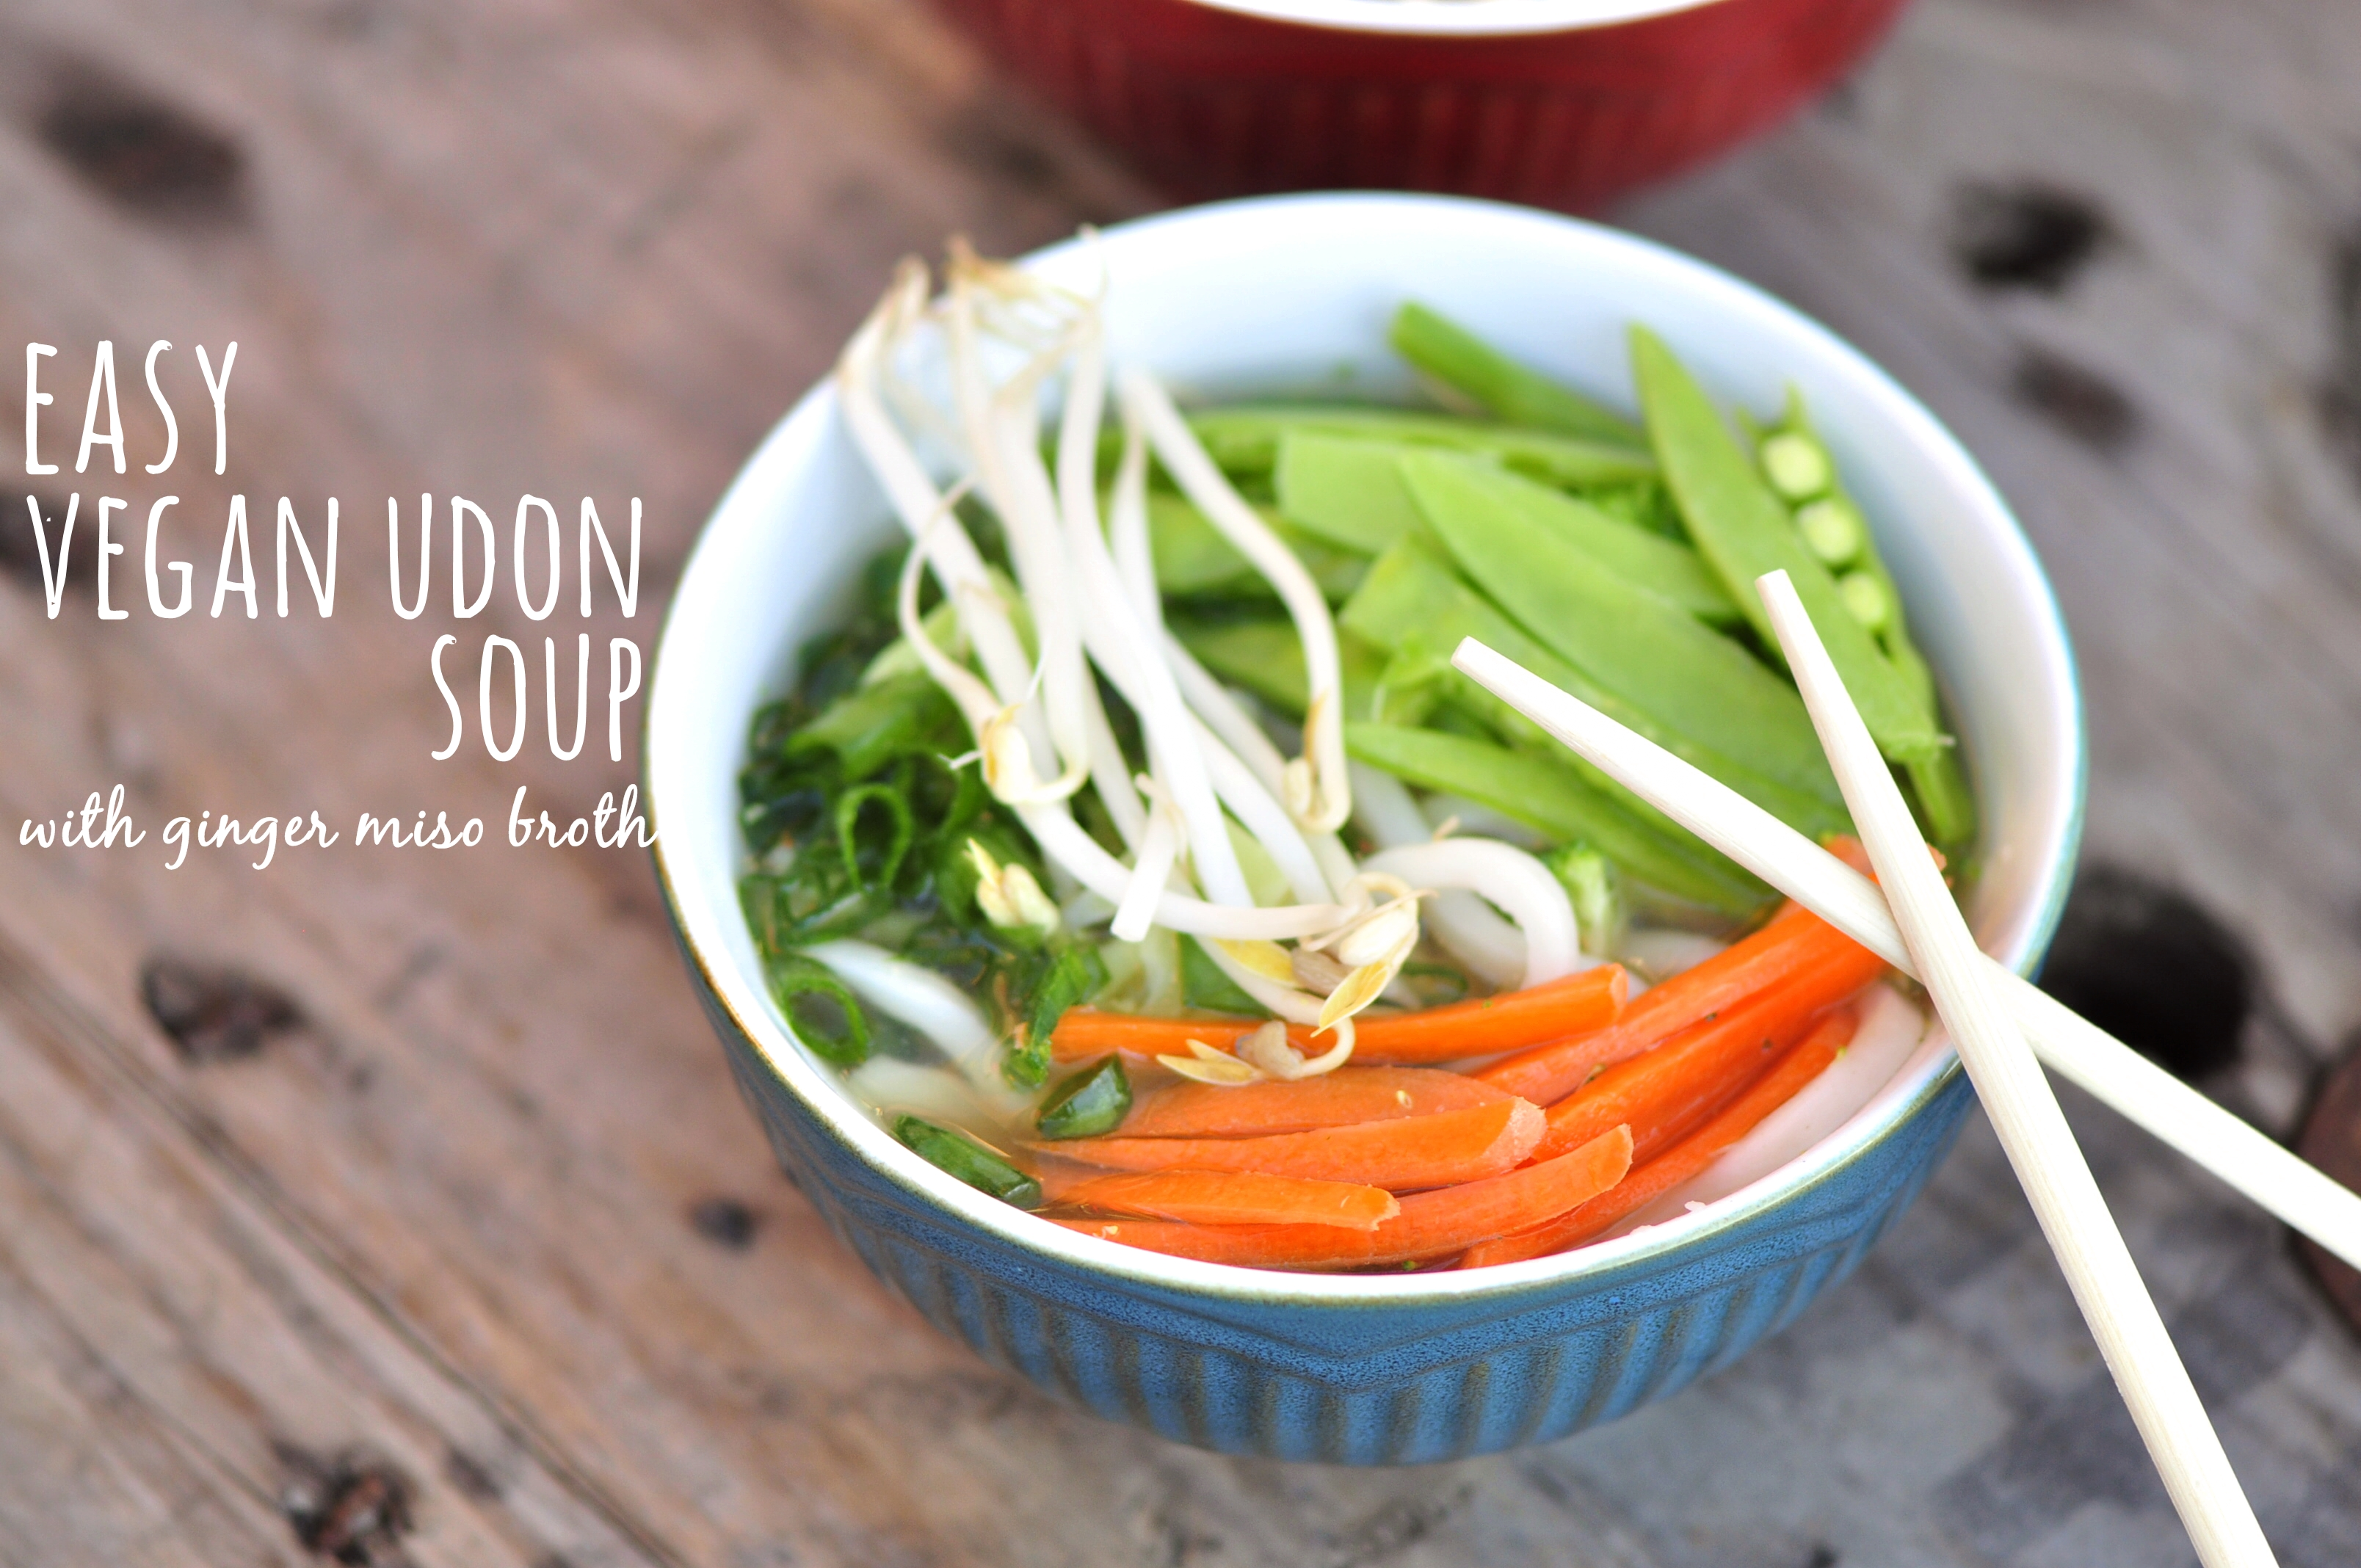 Easy Vegan Udon Soup with Ginger Miso Broth – the vegetarian ginger